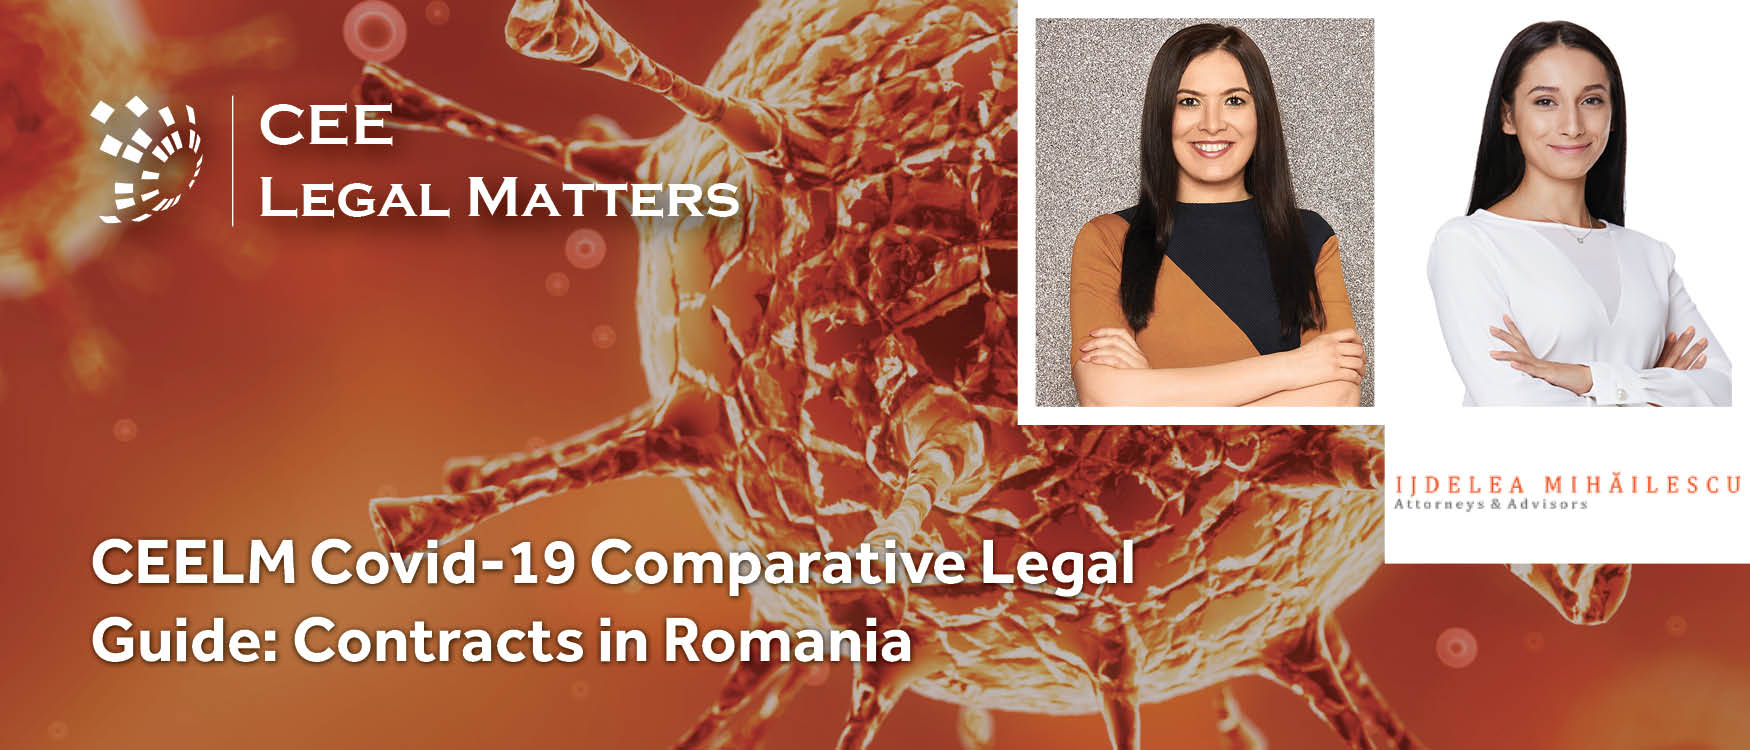 CEELM Covid-19 Comparative Legal Guide: Contracts in Romania